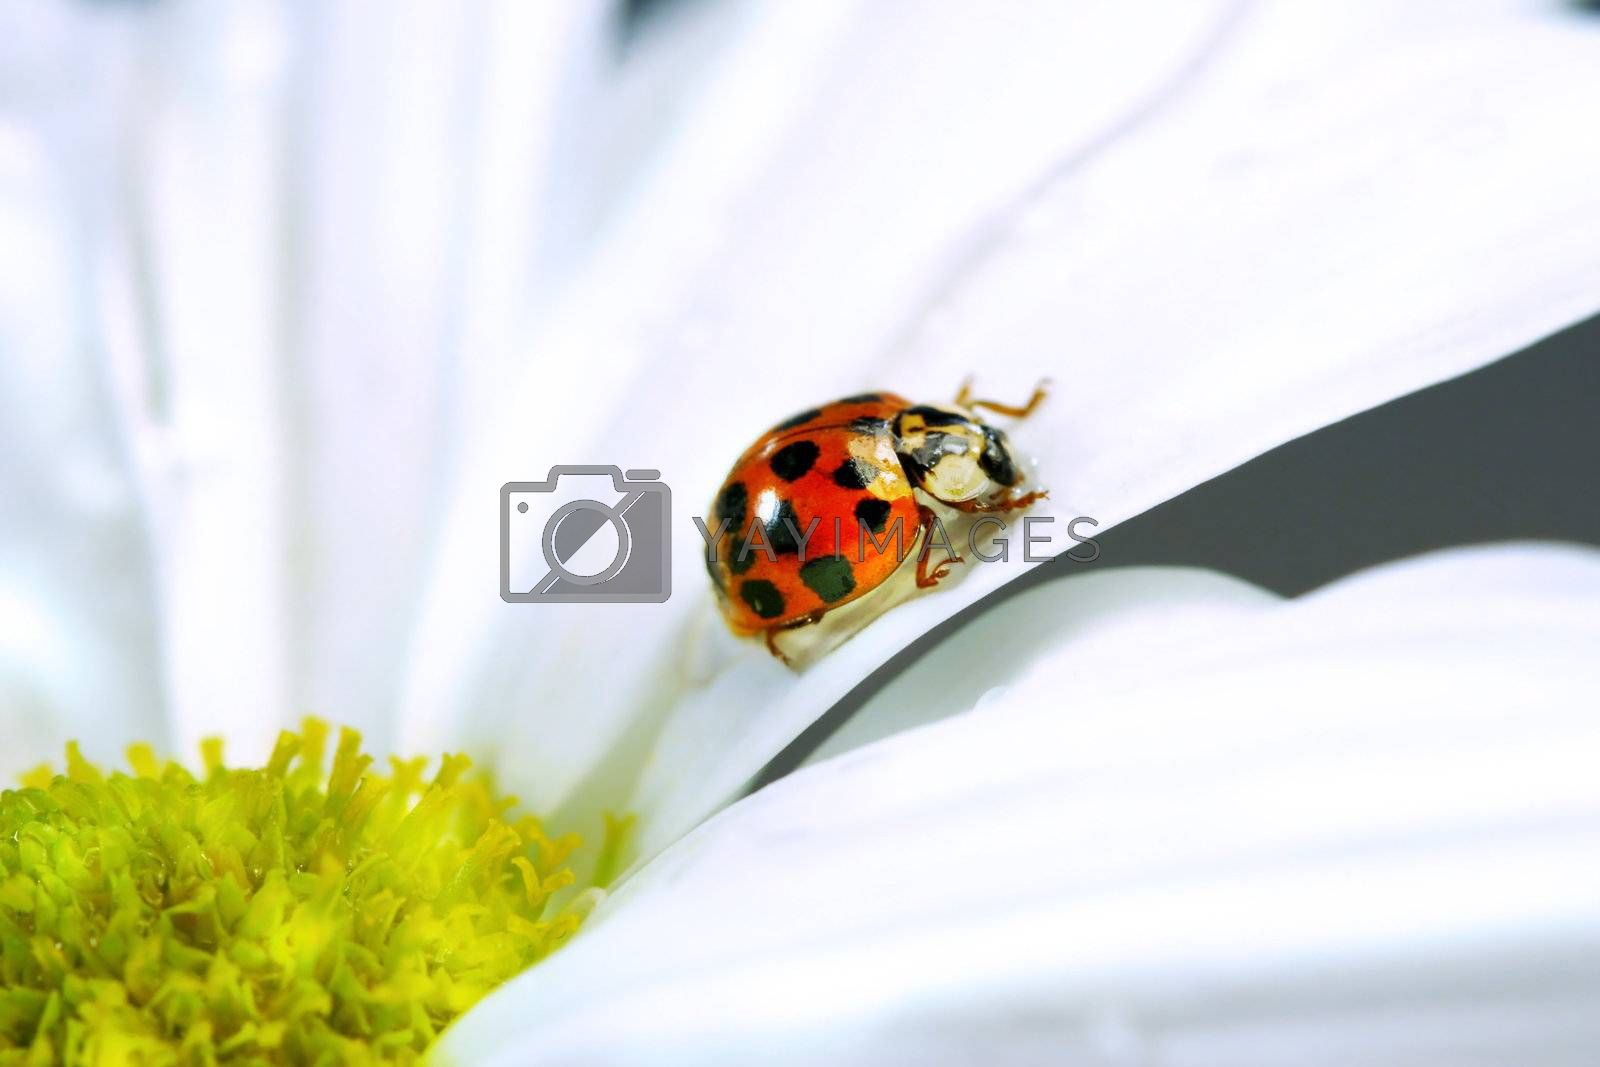 Little red ladybug on the petal of a daisy